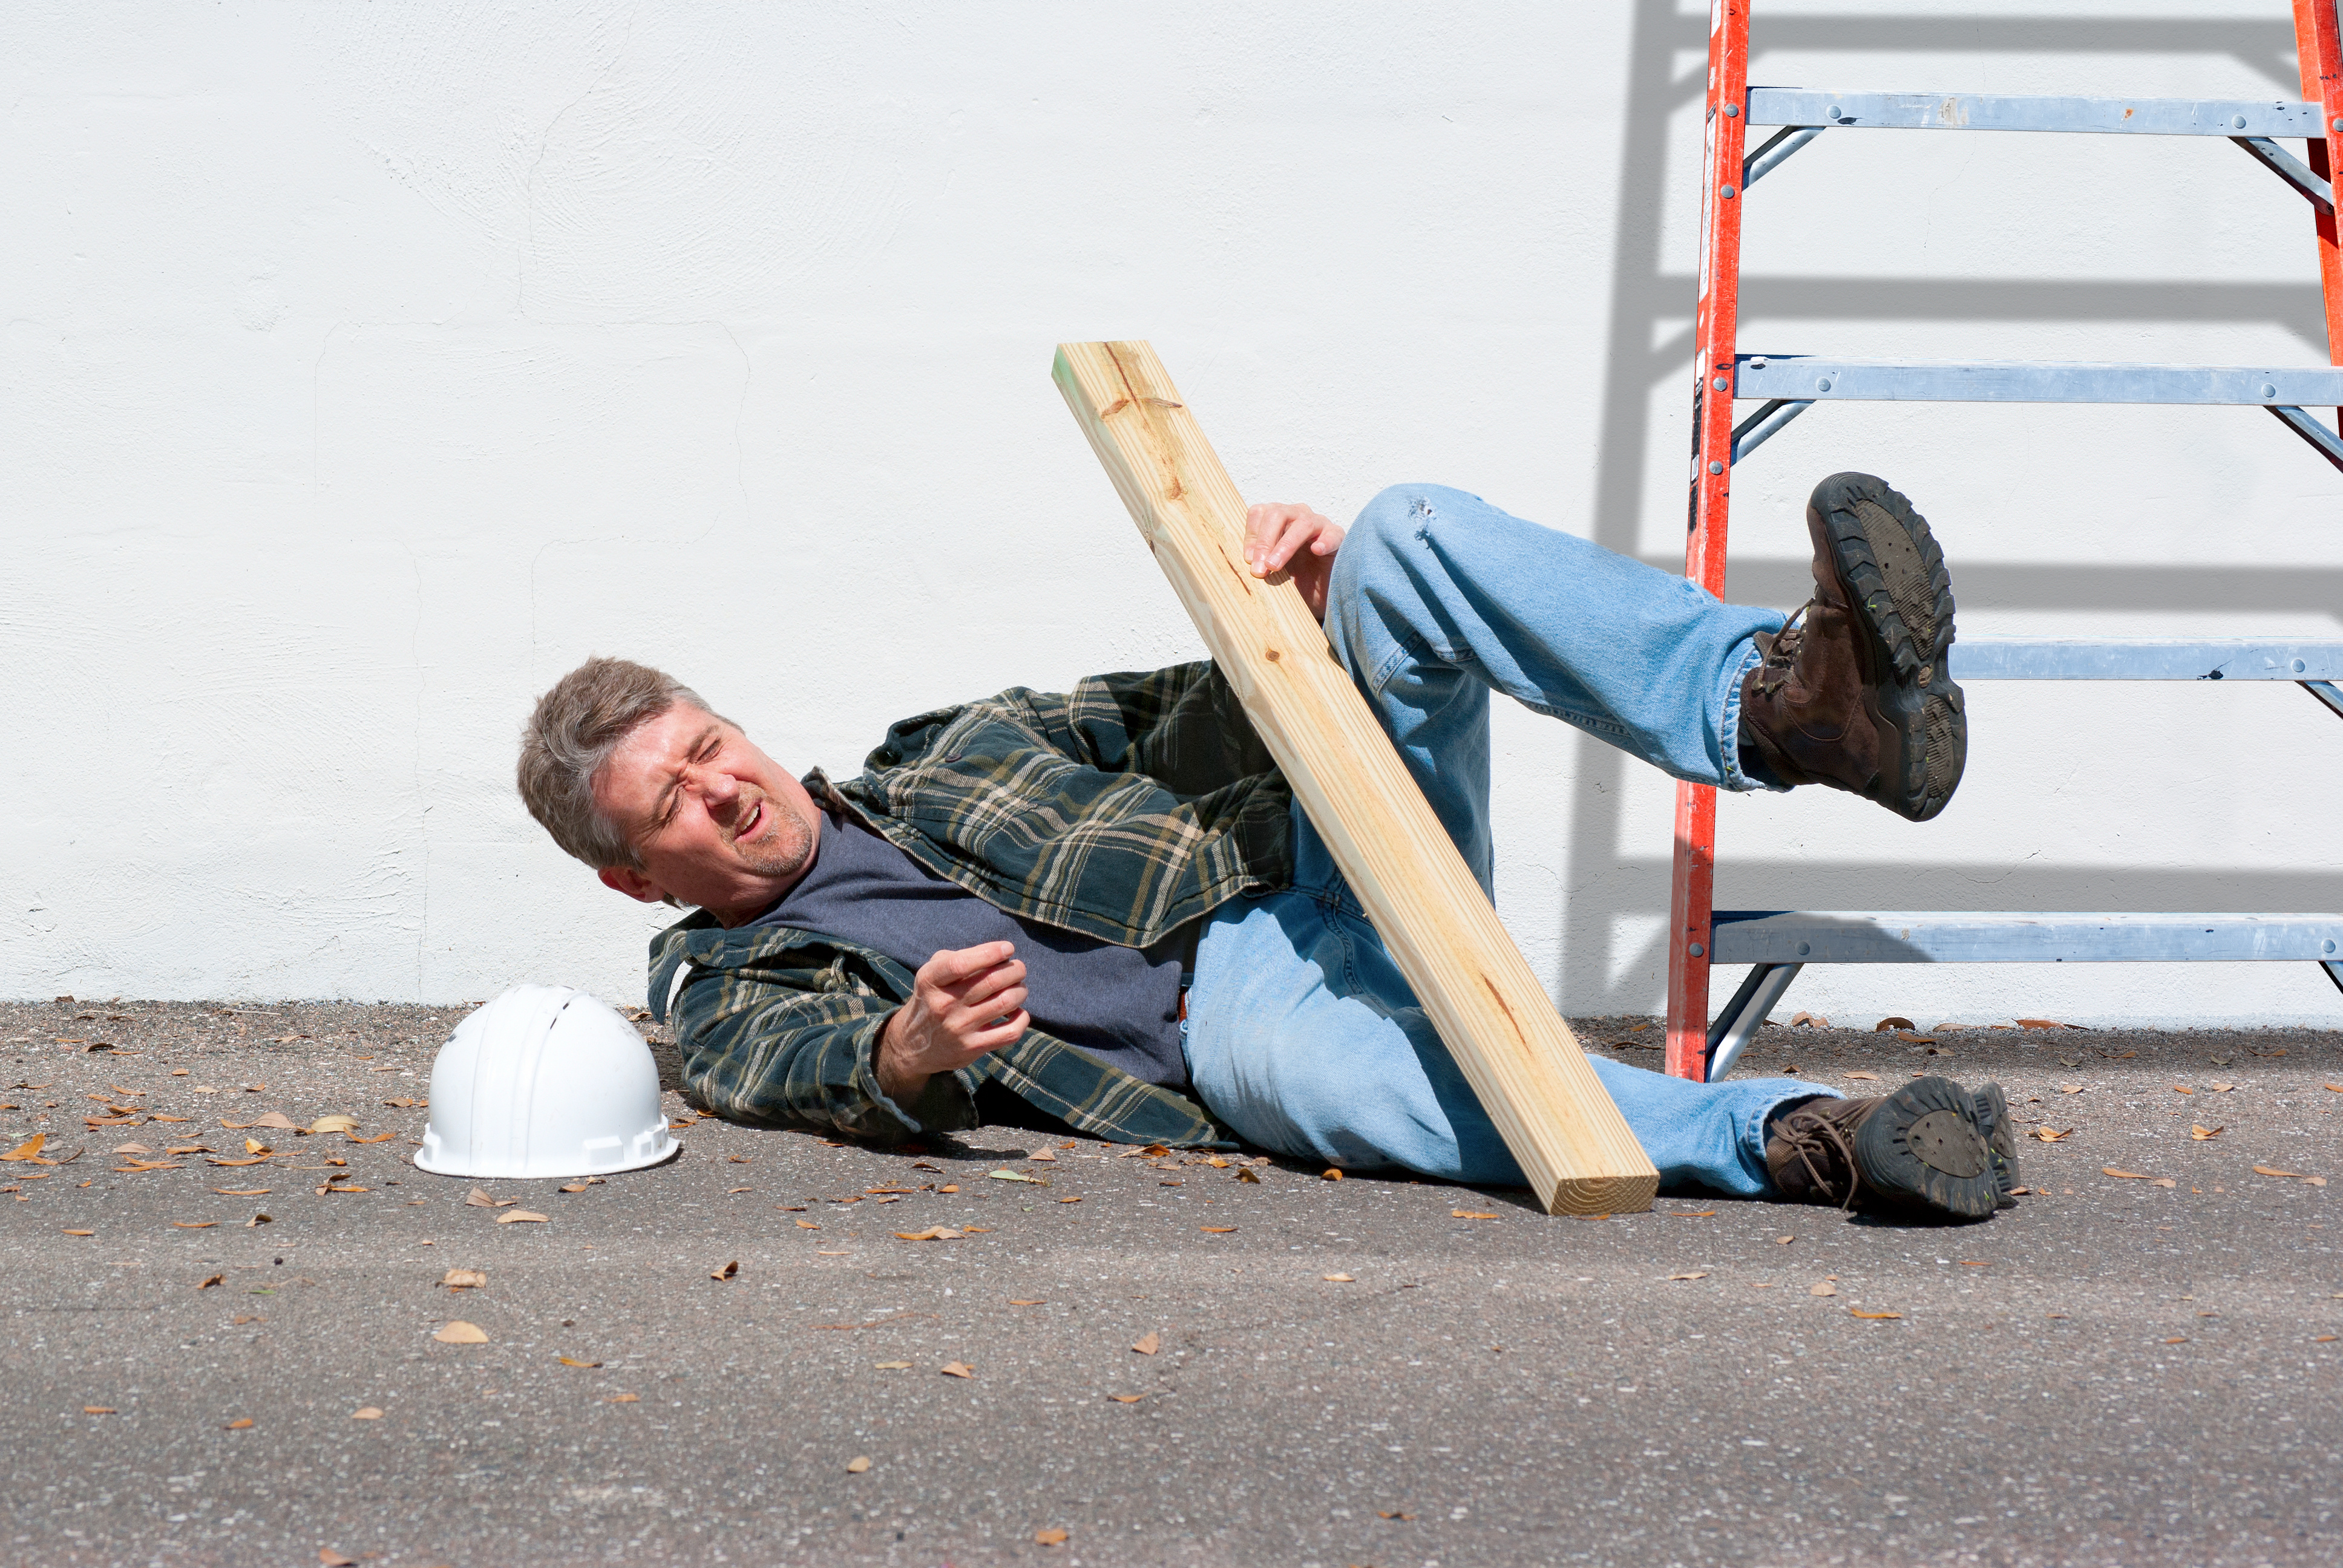 OSHA Targets Sectors with High Rates of Workplace Injuries